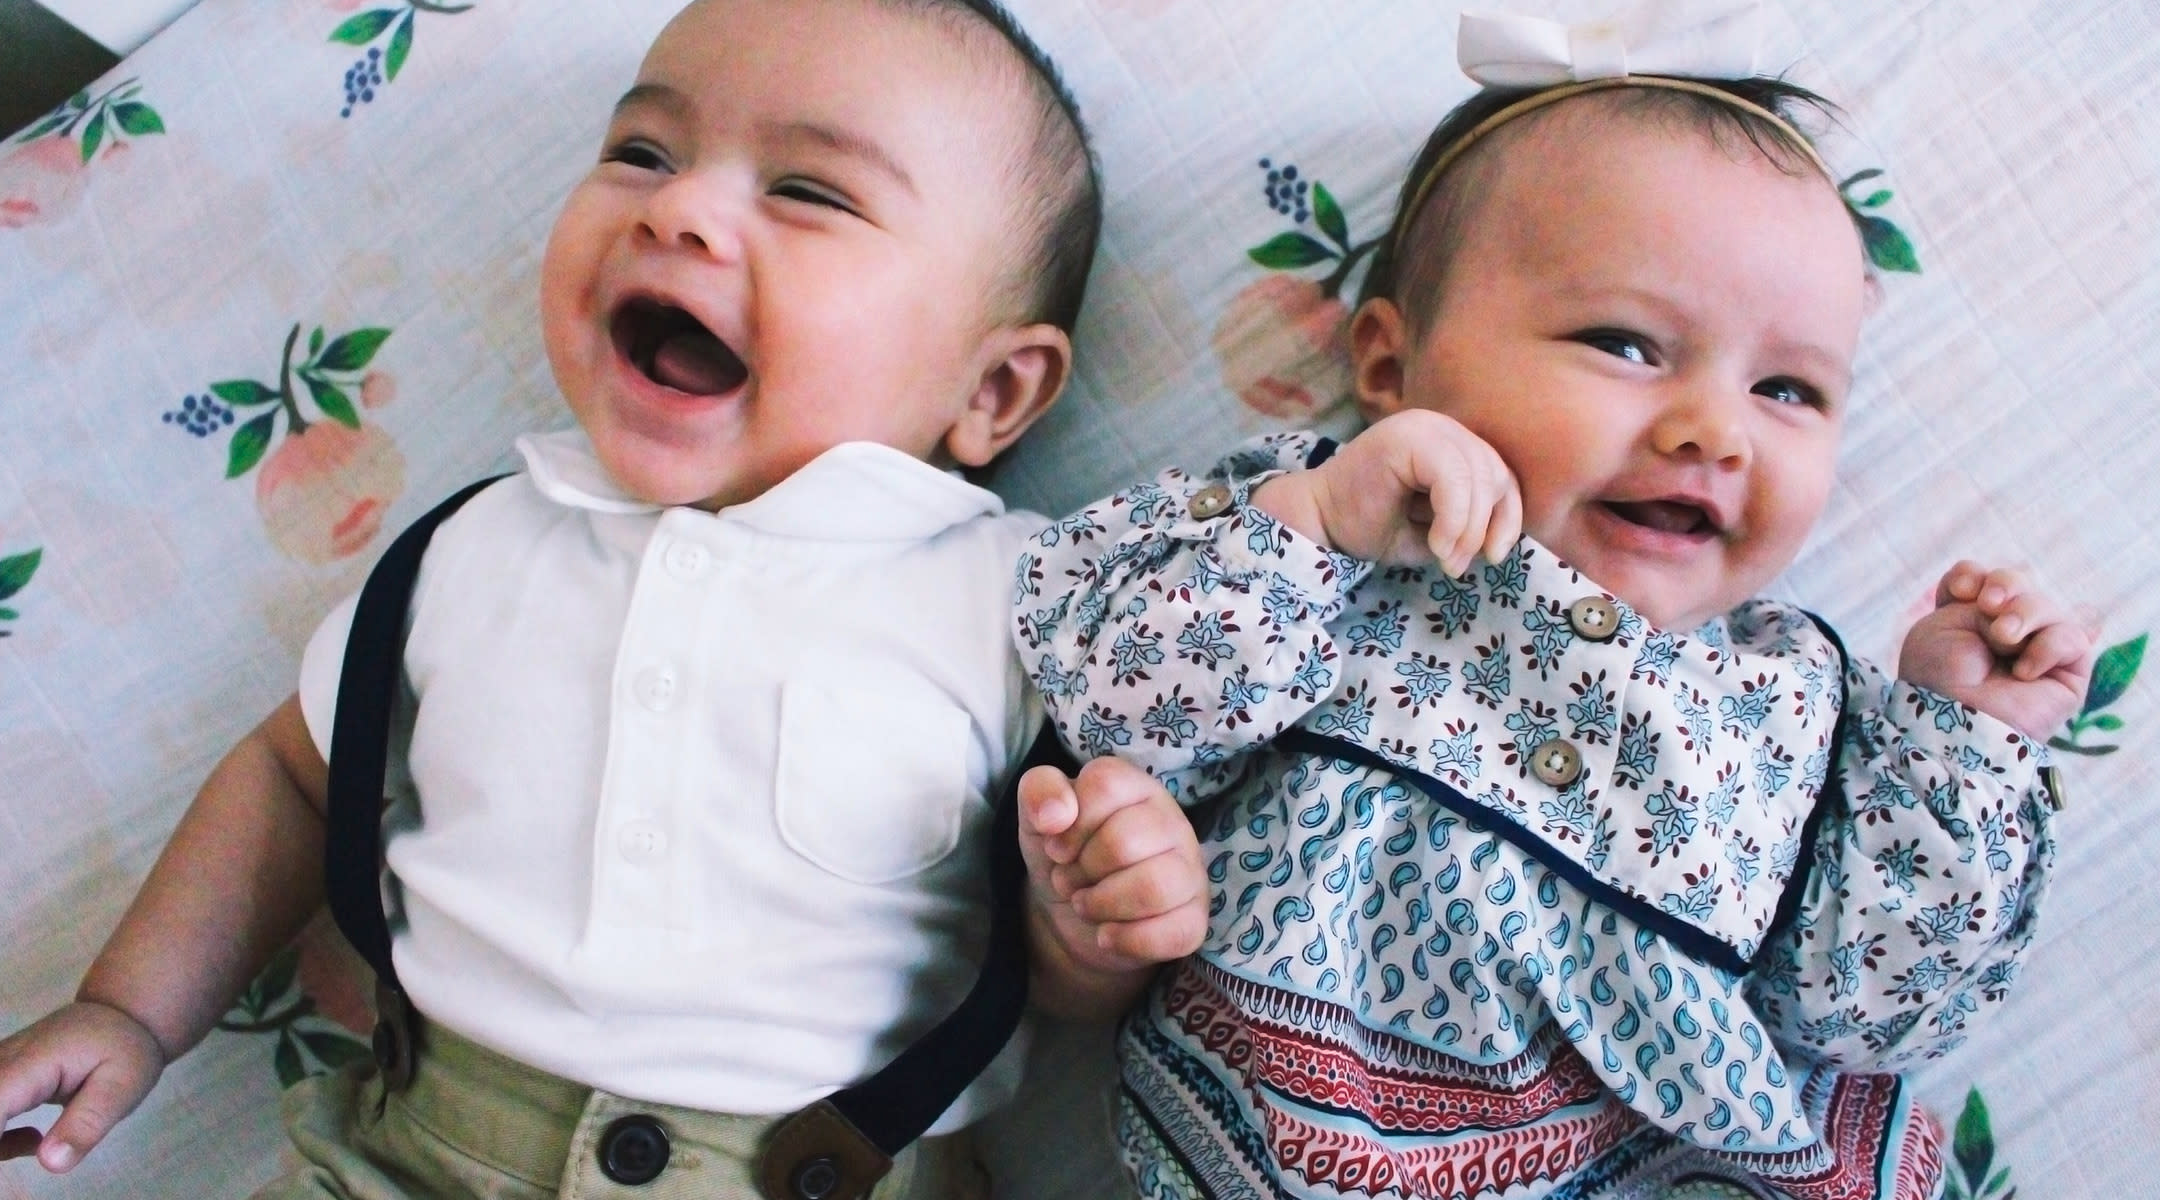 babies laughing and talking to each other